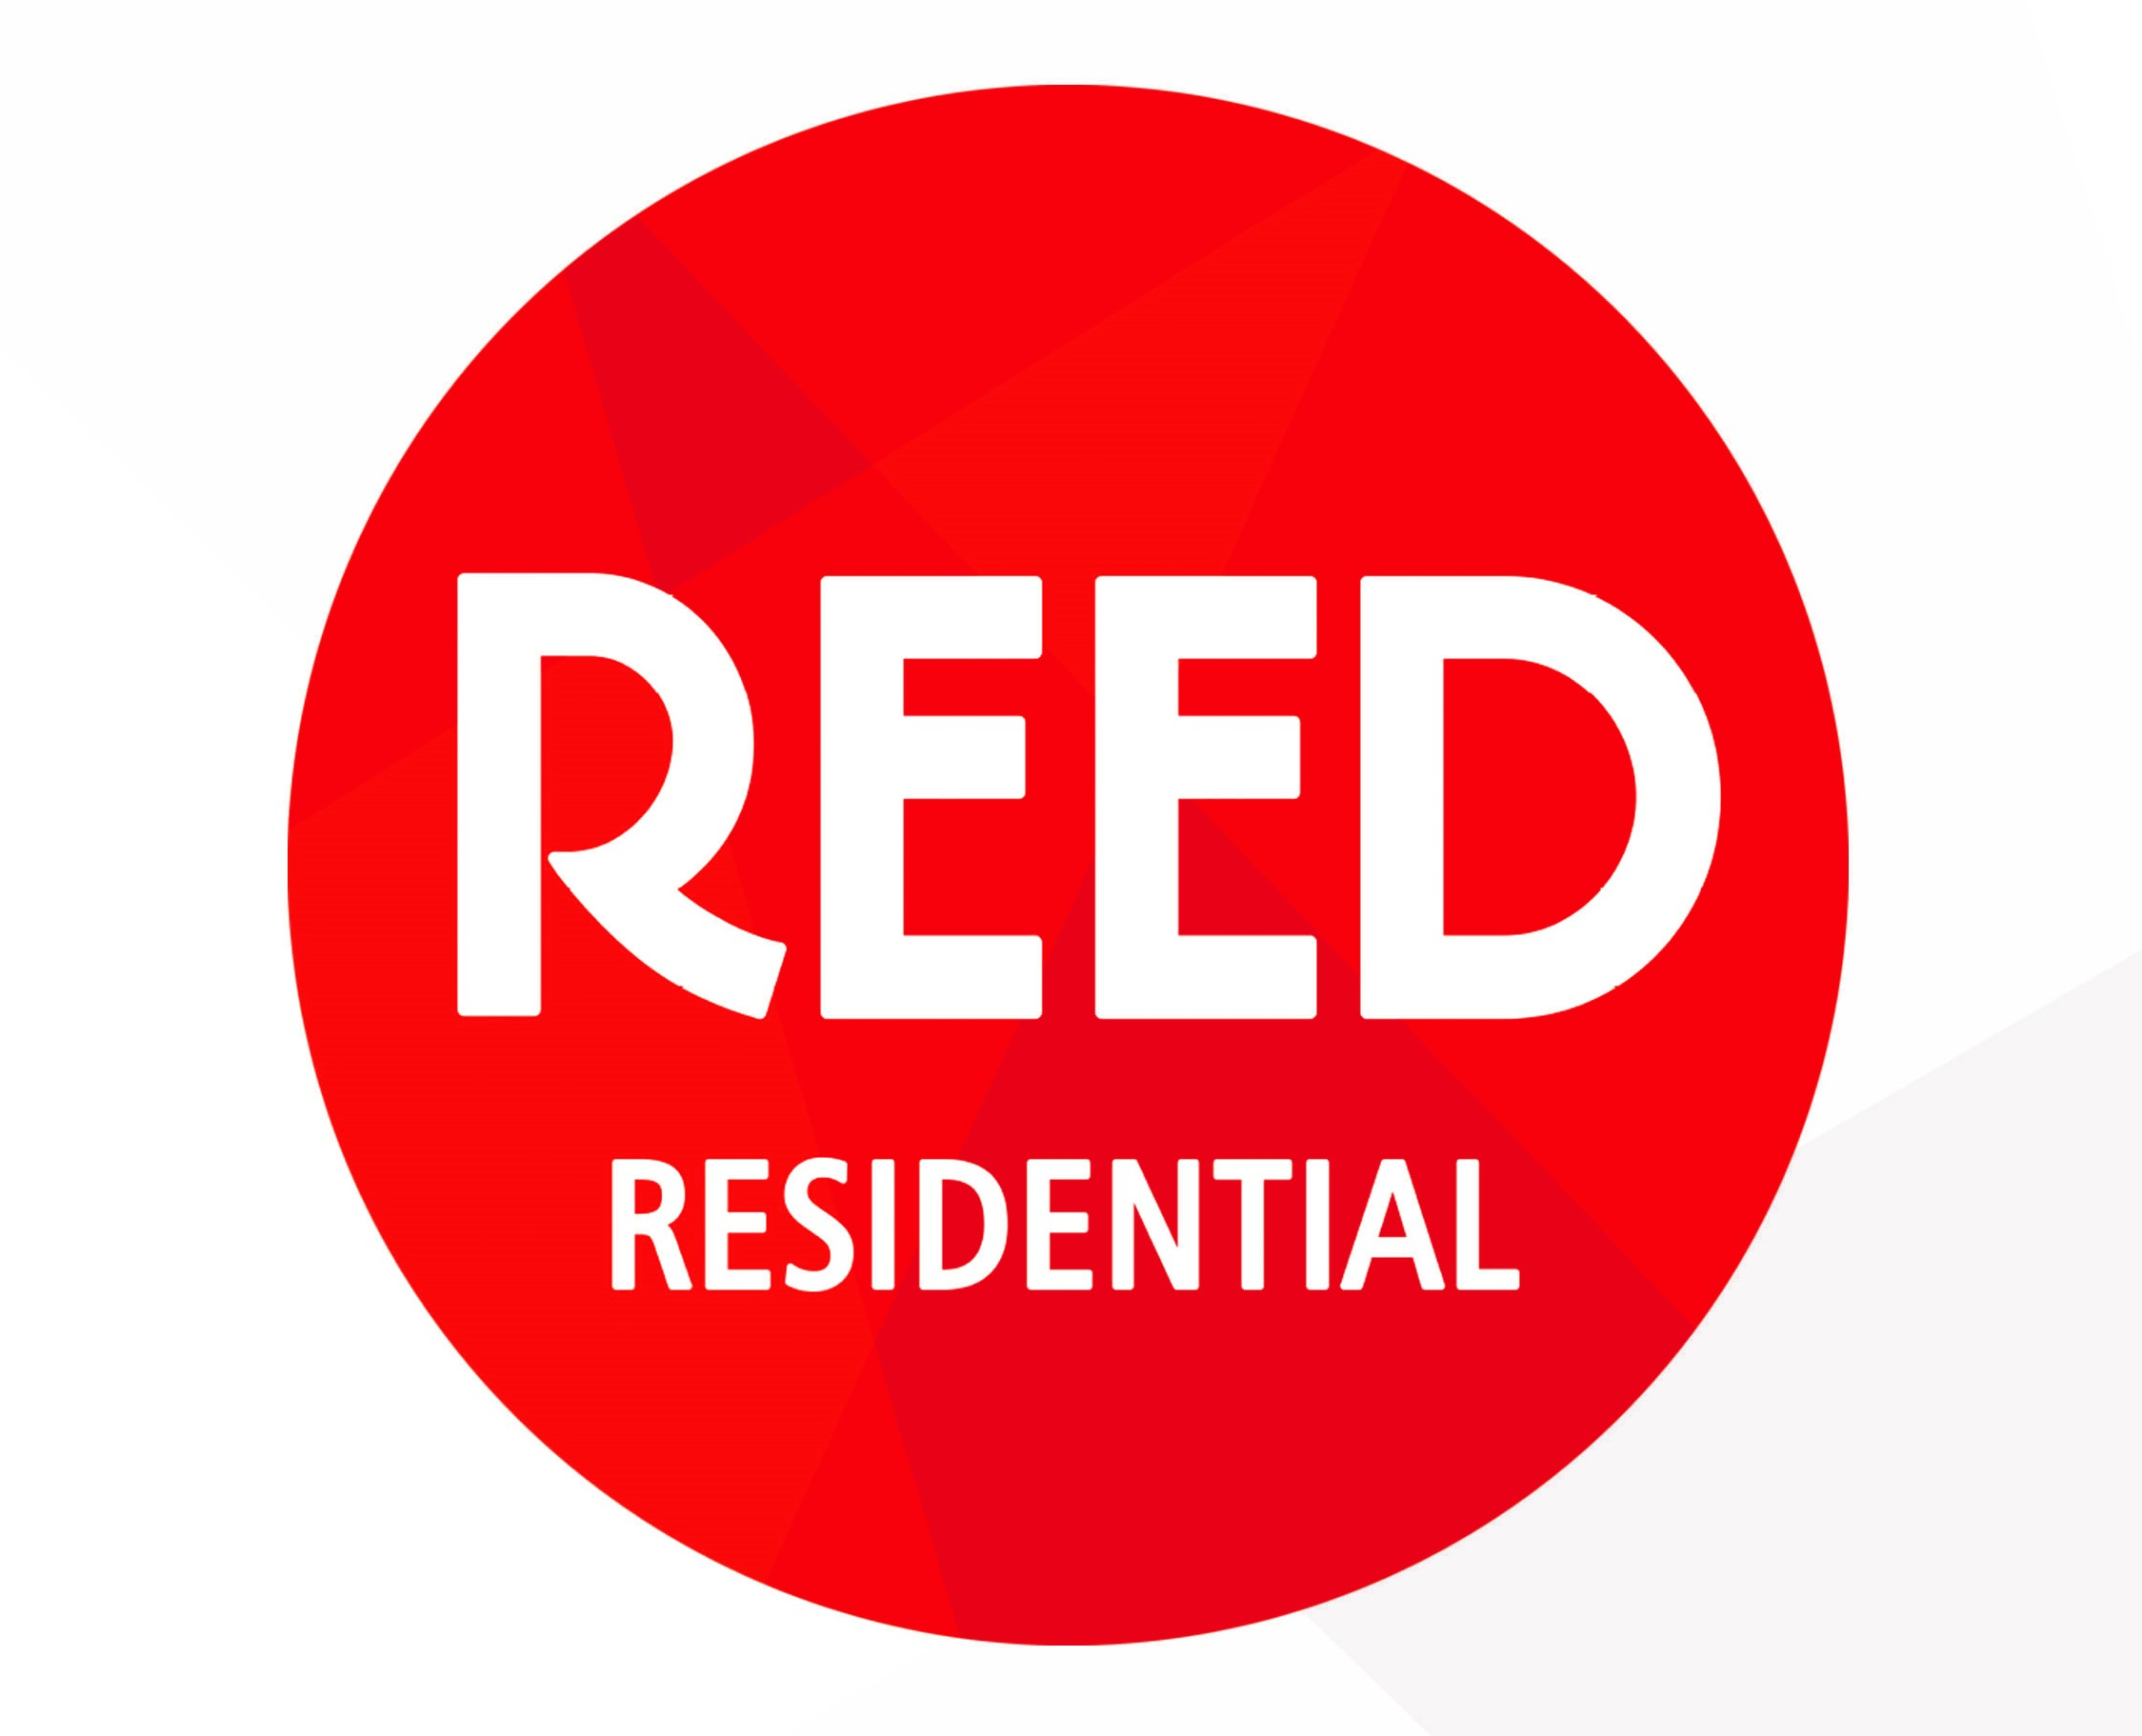 Reed Residential - Westcliff on Sea : Letting agents in Stratford Greater London Newham